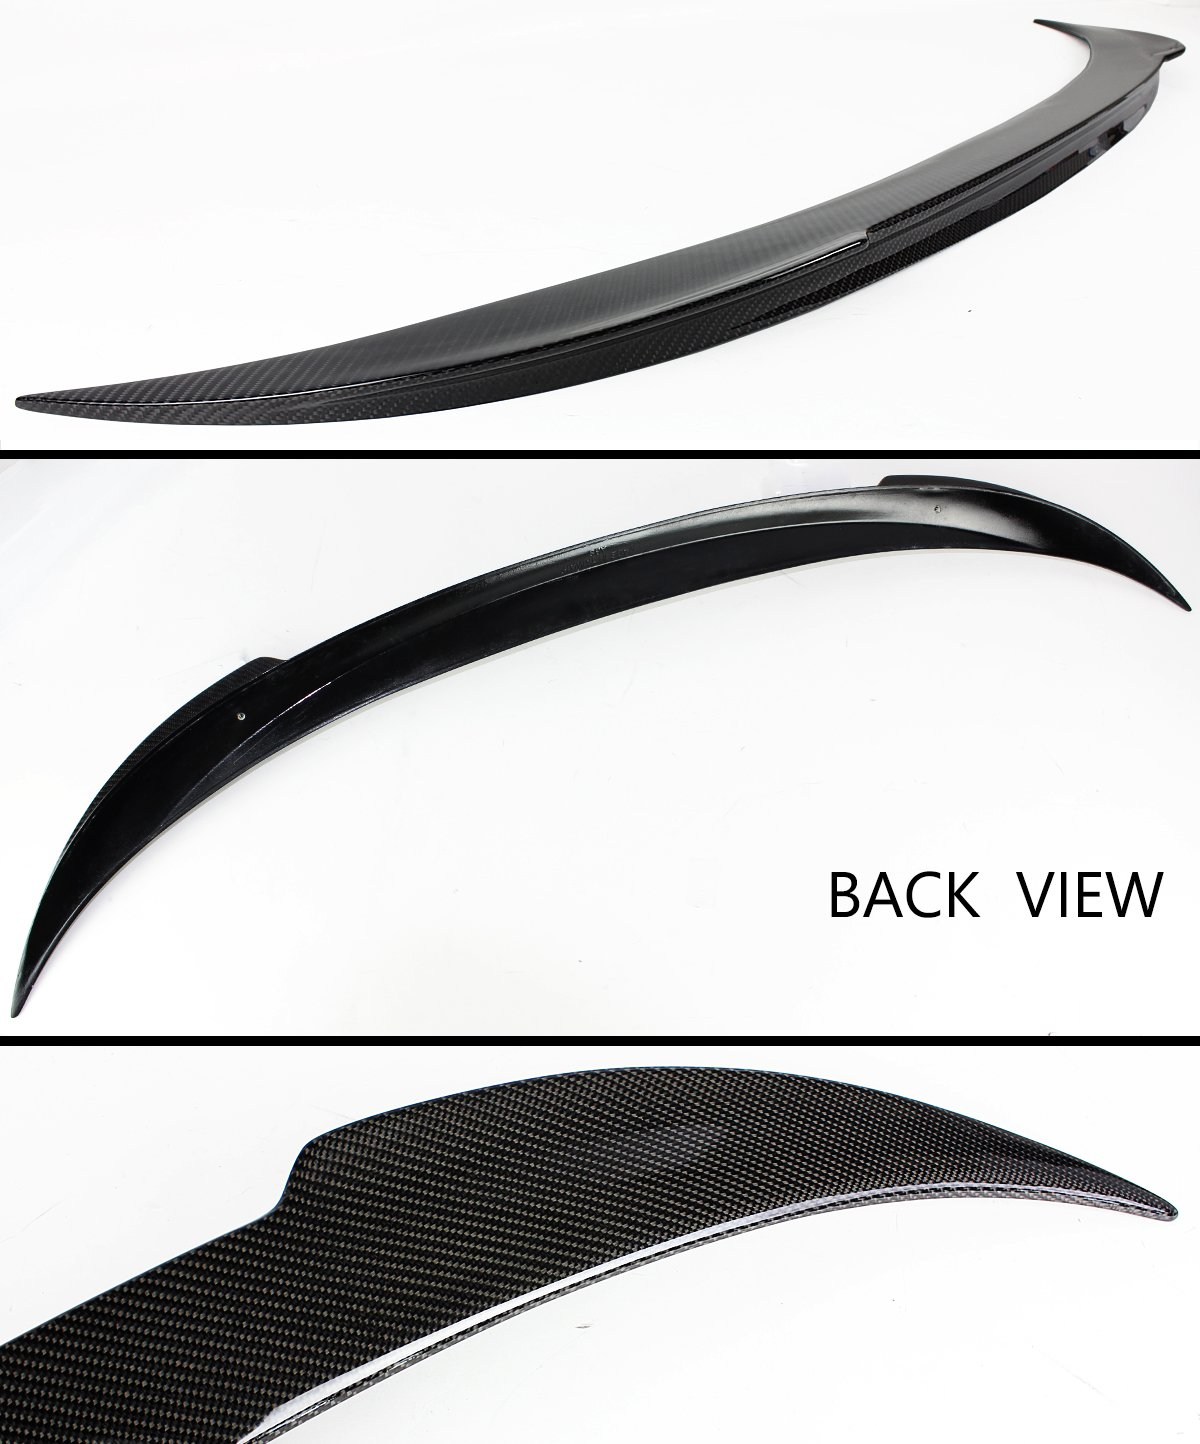 Cuztom Tuning Fits for 2012-2017 BMW F12 F13 640i 650i M6 Coupe /& Convertible V Style Carbon Fiber Trunk Spoiler Wing Lid